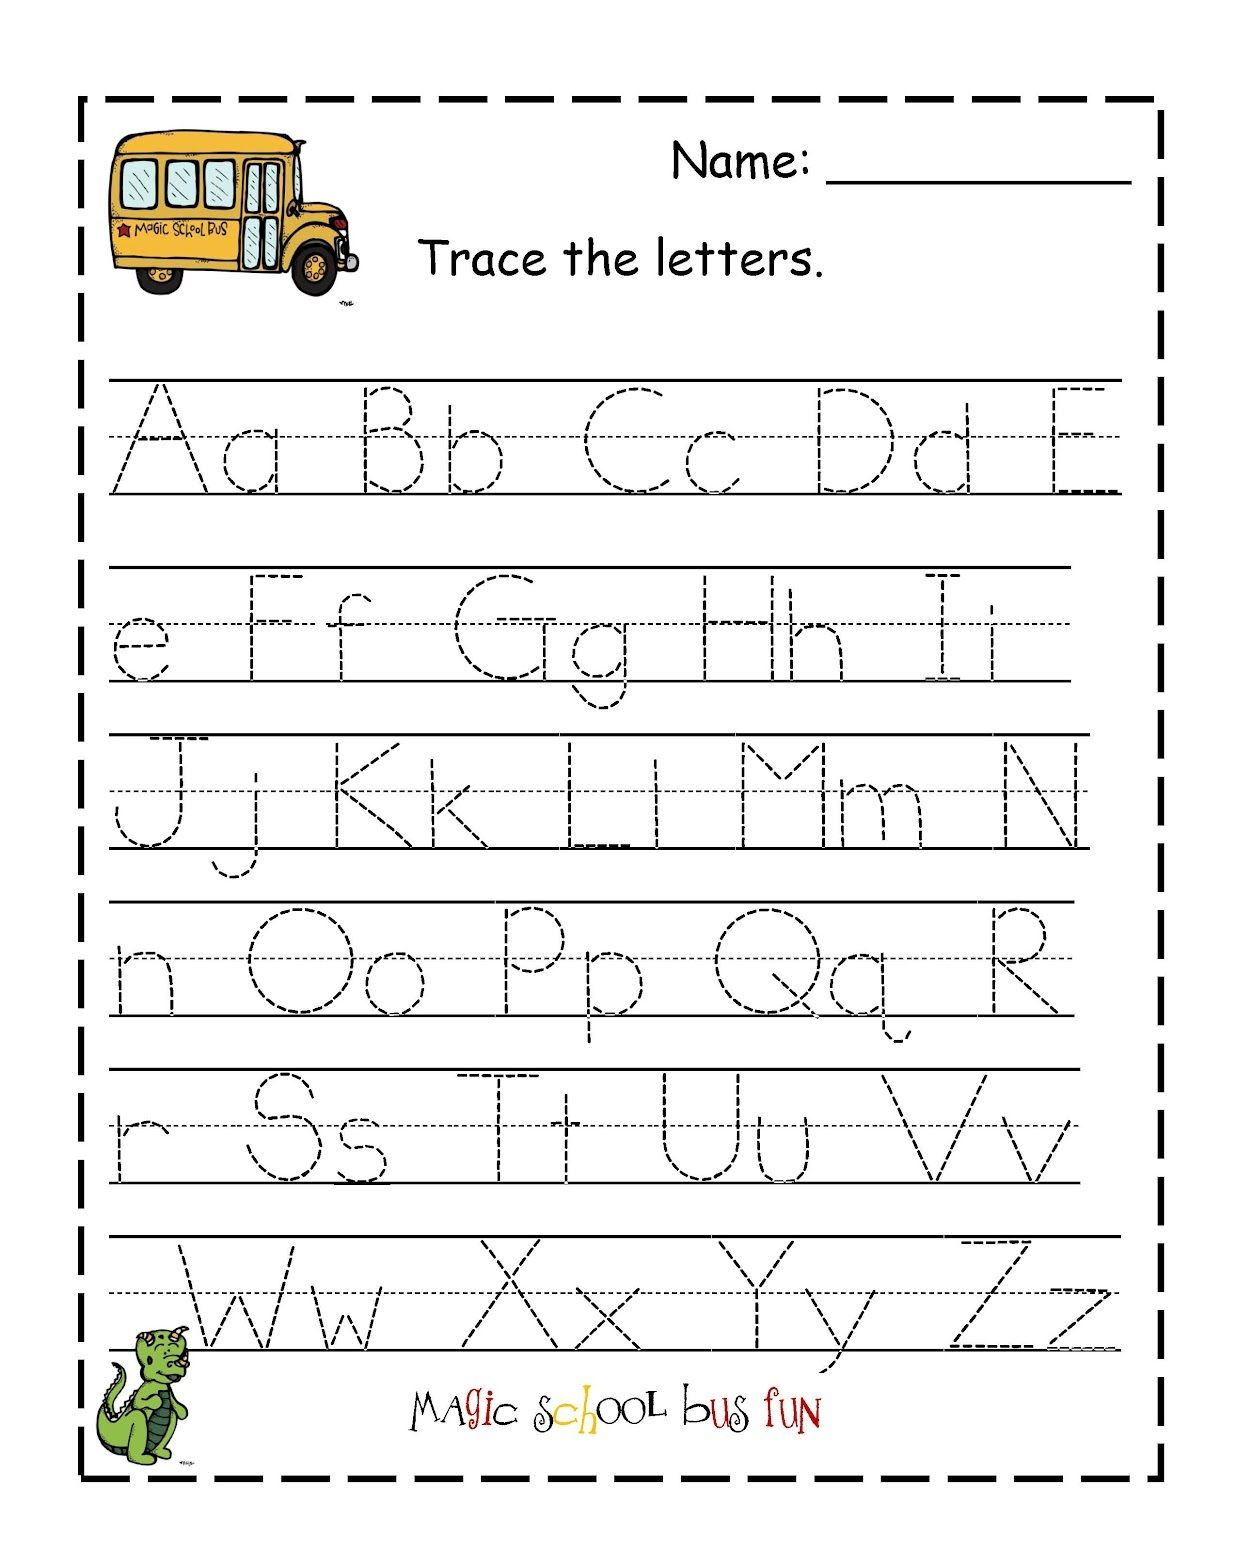 Coloring Book : Tracing Letter Worksheets Preschool Free regarding Tracing Letters Worksheet Printable Free